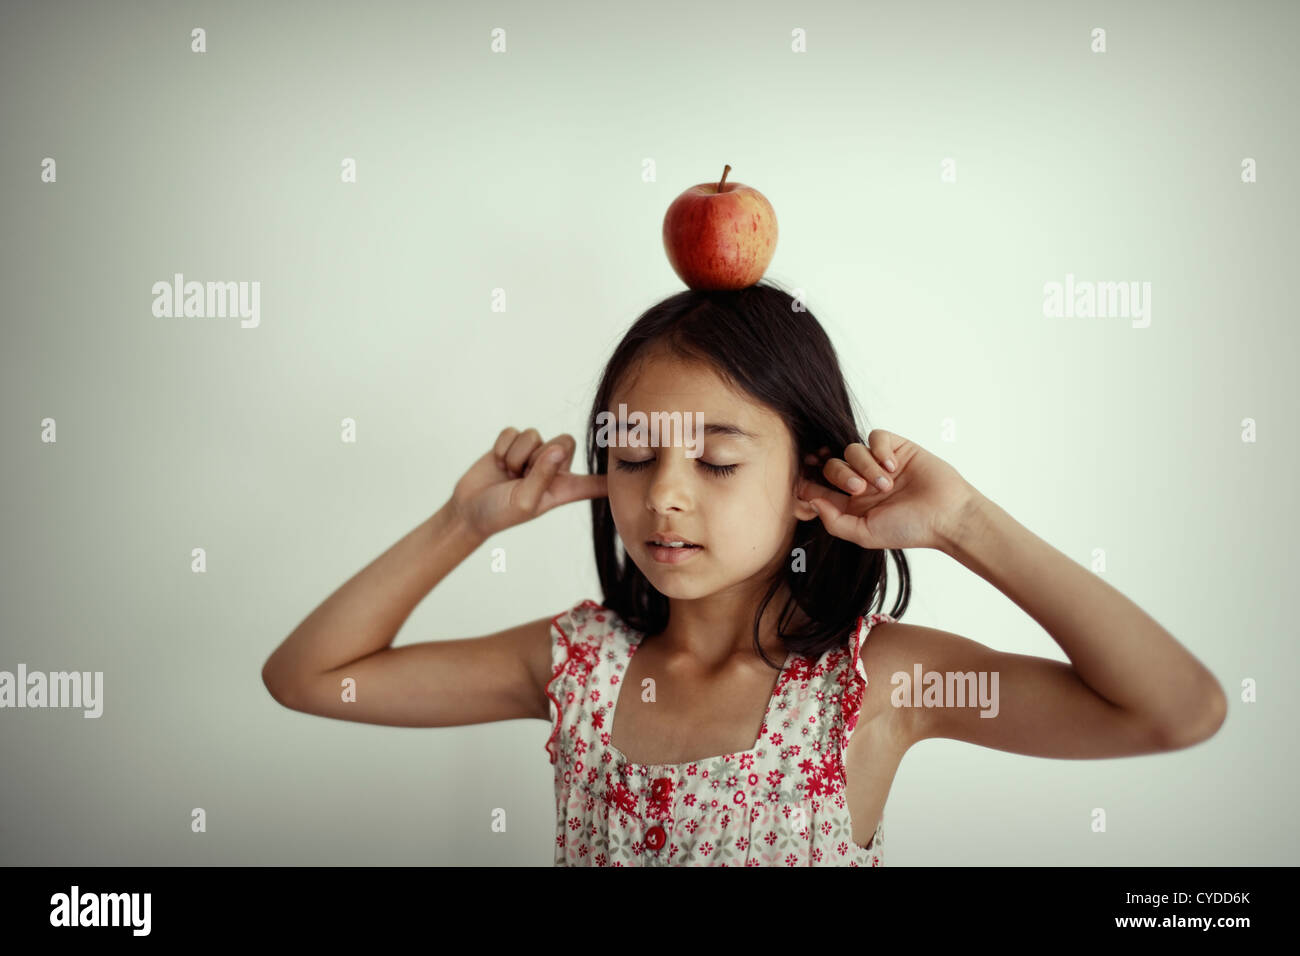 Girl balances apple on head with eyes shut and fingers in ears. - Stock Image